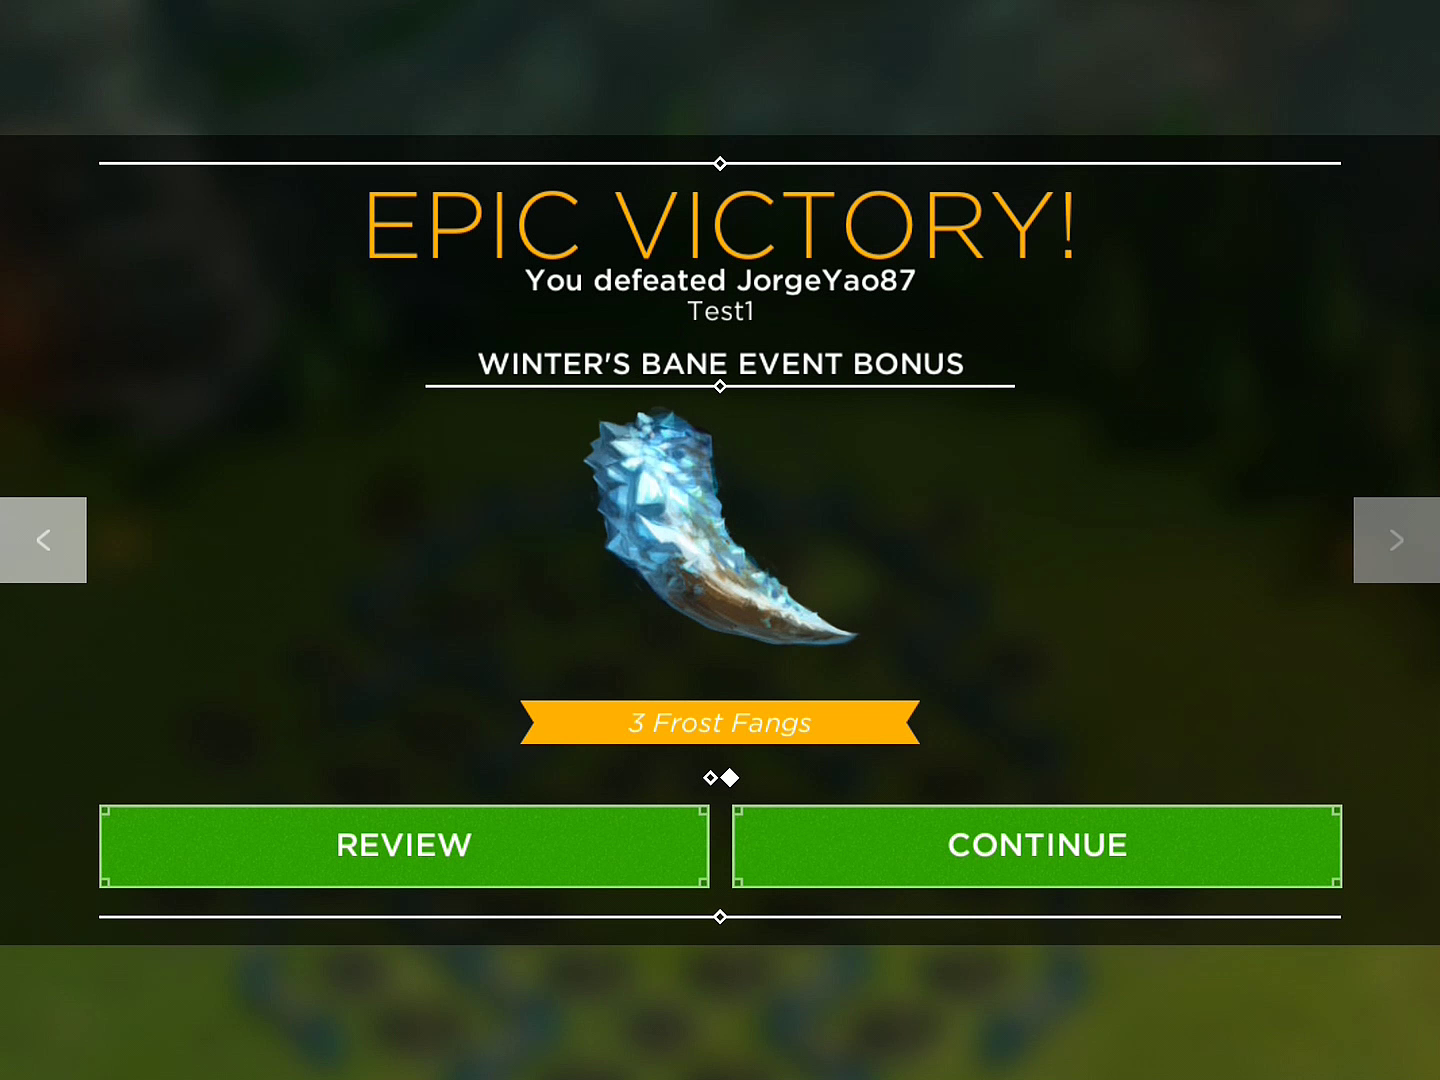 Jorge-Yao-victory-screen2.png